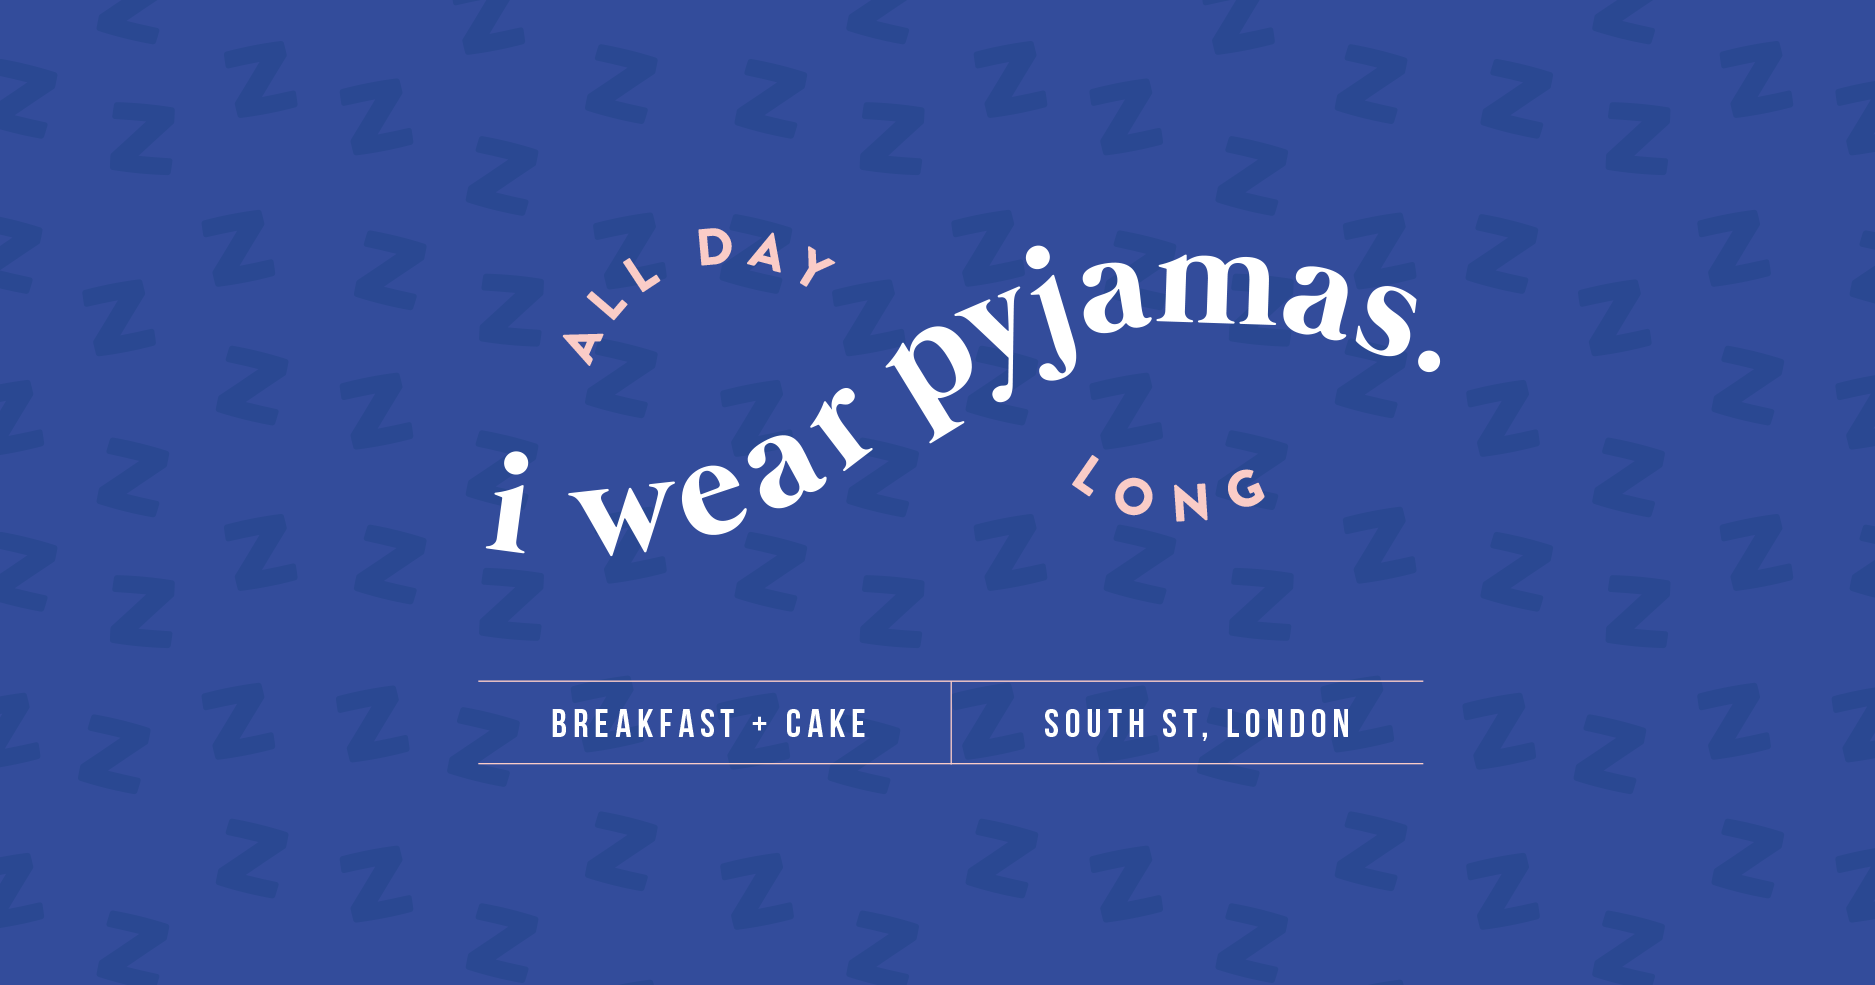 Final logo design for i wear pyjamas, a self-confessed breakfast & cake bar  - Designed by Wiltshire-based graphic designer, Kaye Huett